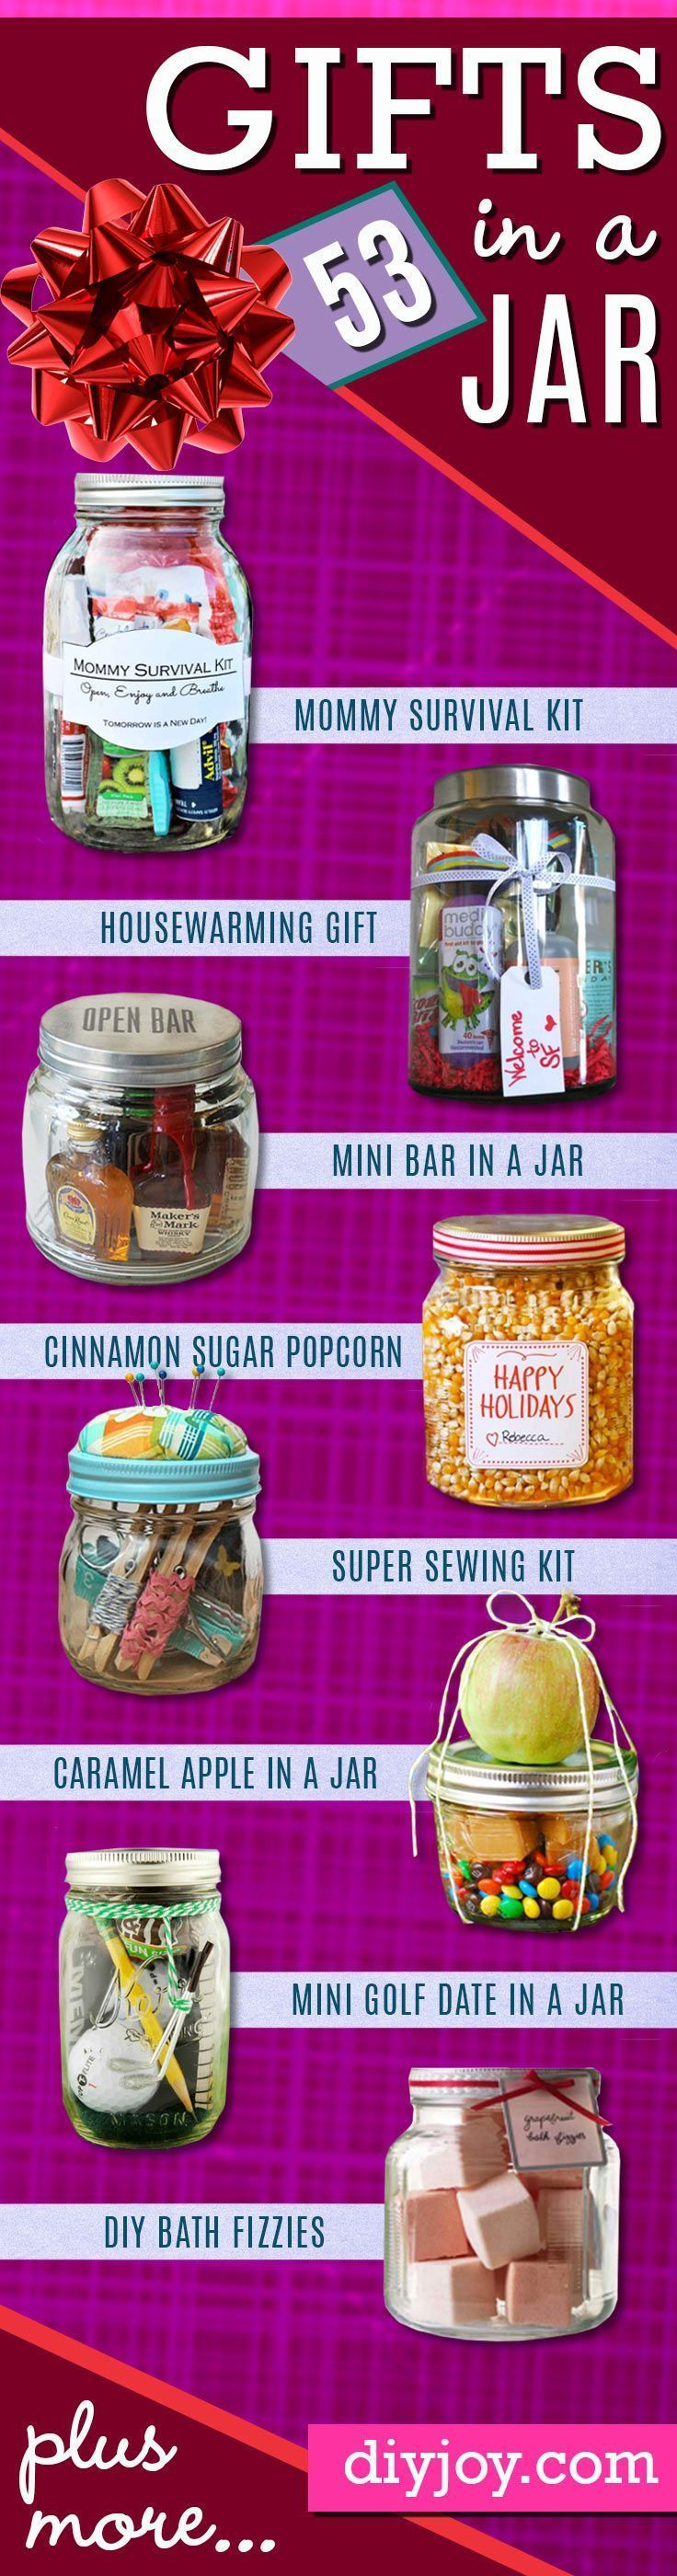 Best Homemade DIY Gifts in A Jar | Best Mason Jar Cookie Mixes and Recipes, Alcohol Mixers | Fun Gift Ideas for Men, Women, Teens, Kids, Teacher, Mom. Christmas, Holiday, Birthday and Easy Last Minute Gifts diyjoy.com∕...